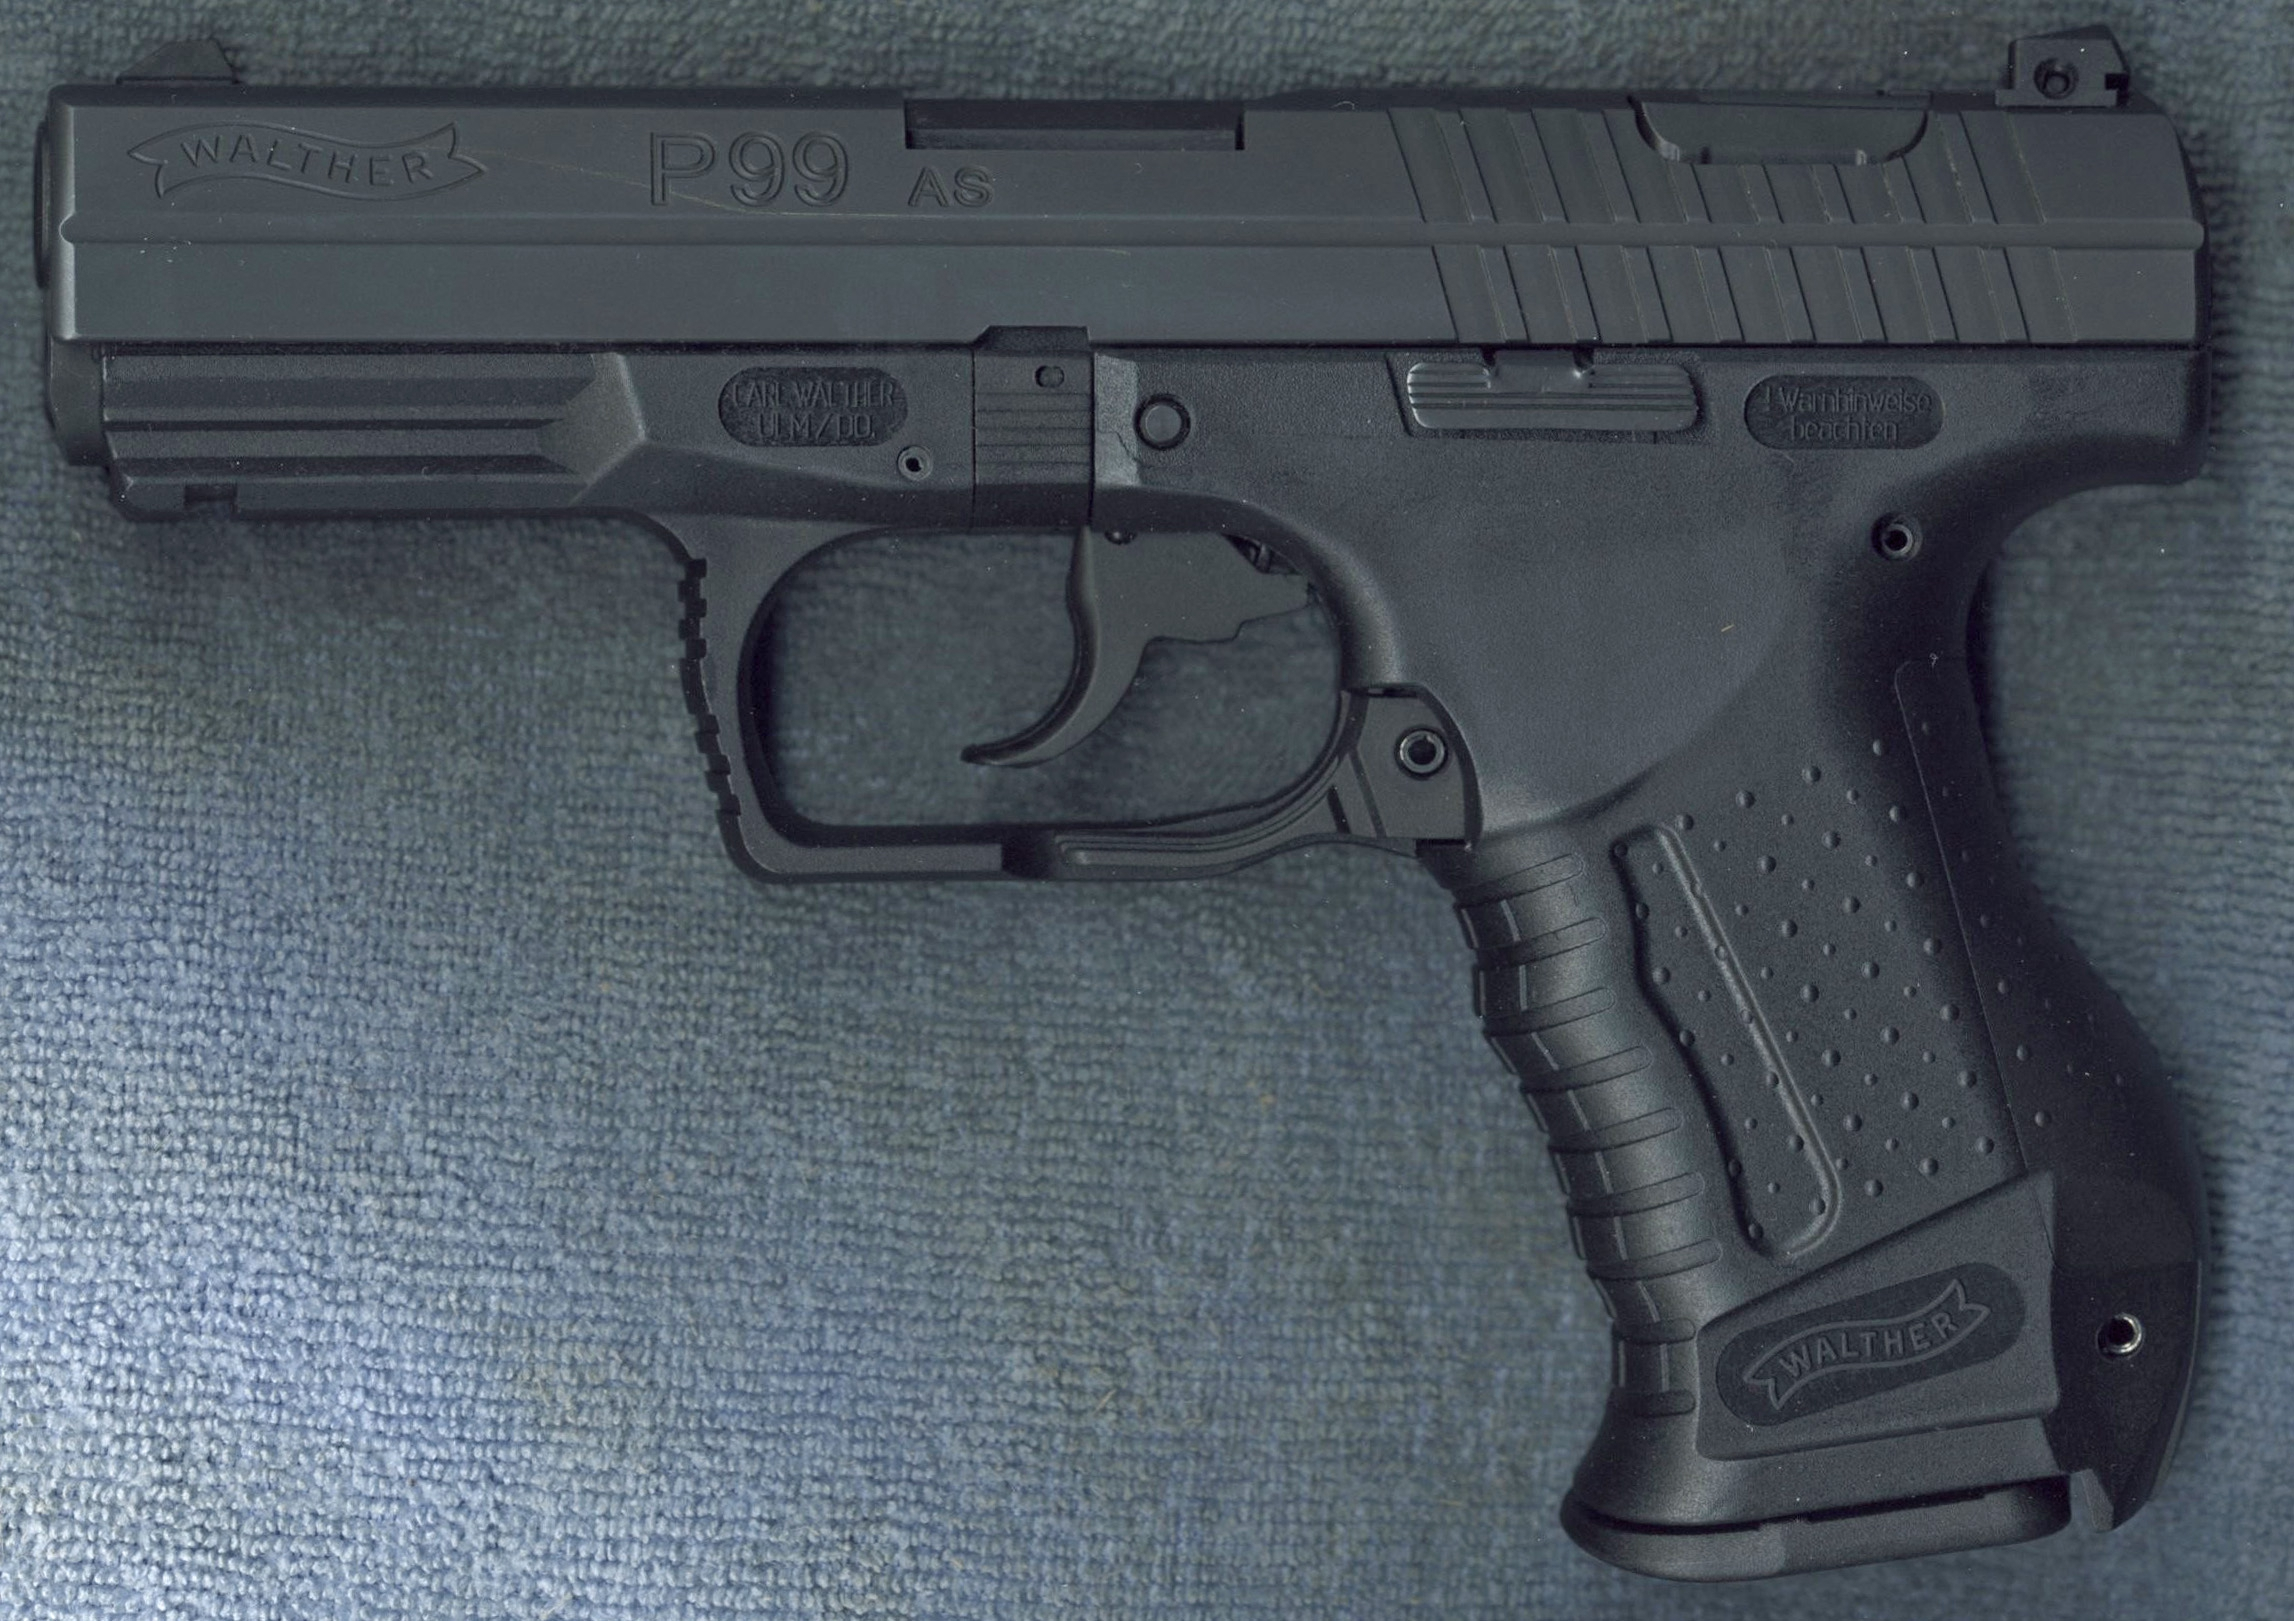 Walther P99 As Wallpapers Hq 2294x1621